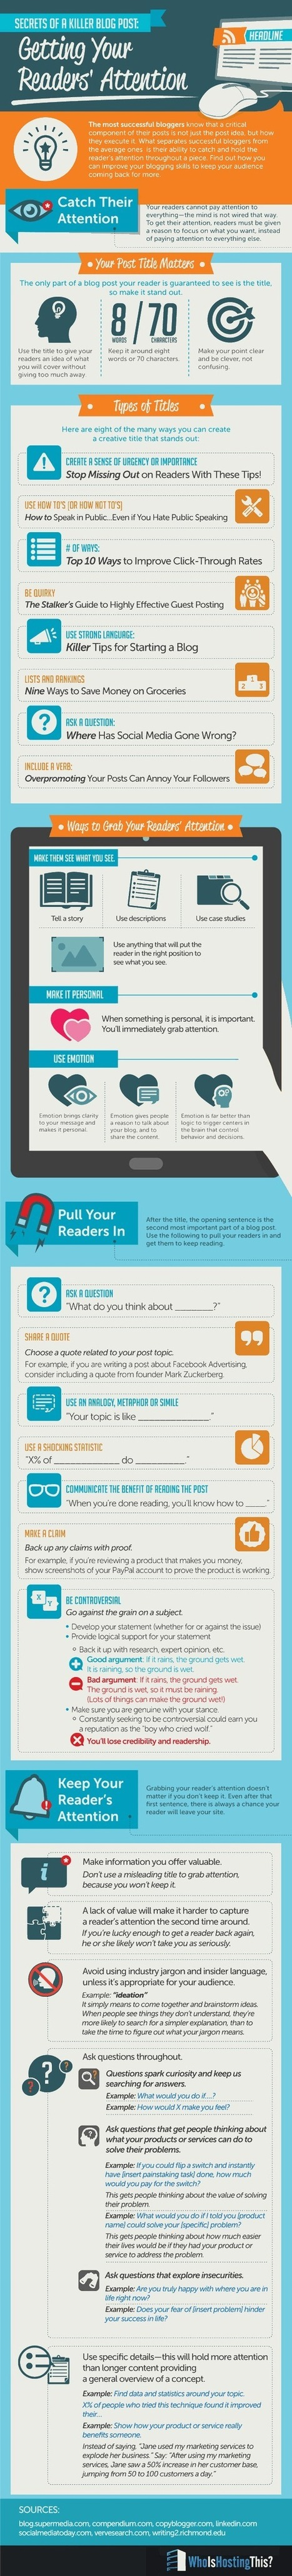 The Secrets to Writing an Attention-Grabbing Blog Post [Infographic] | Pedagogia Infomacional | Scoop.it